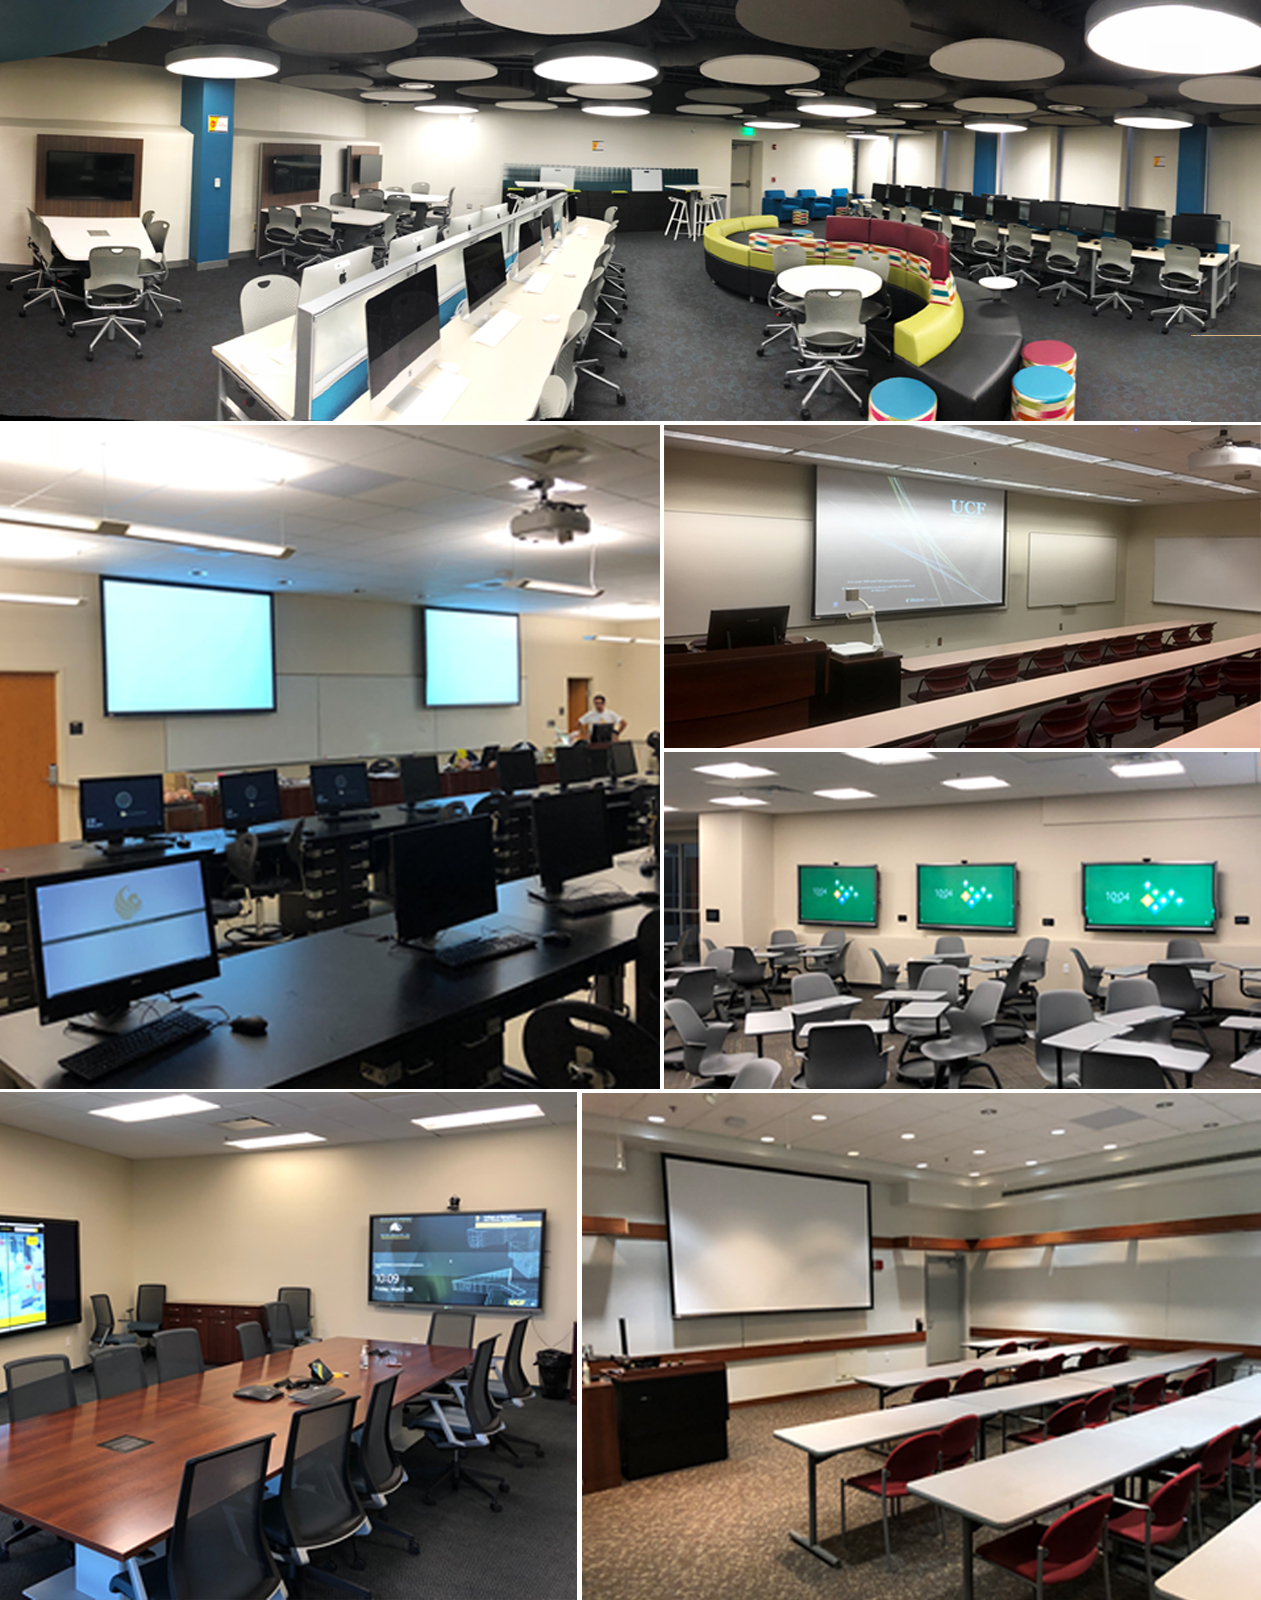 FP&C Upgrades Over 160 Classrooms